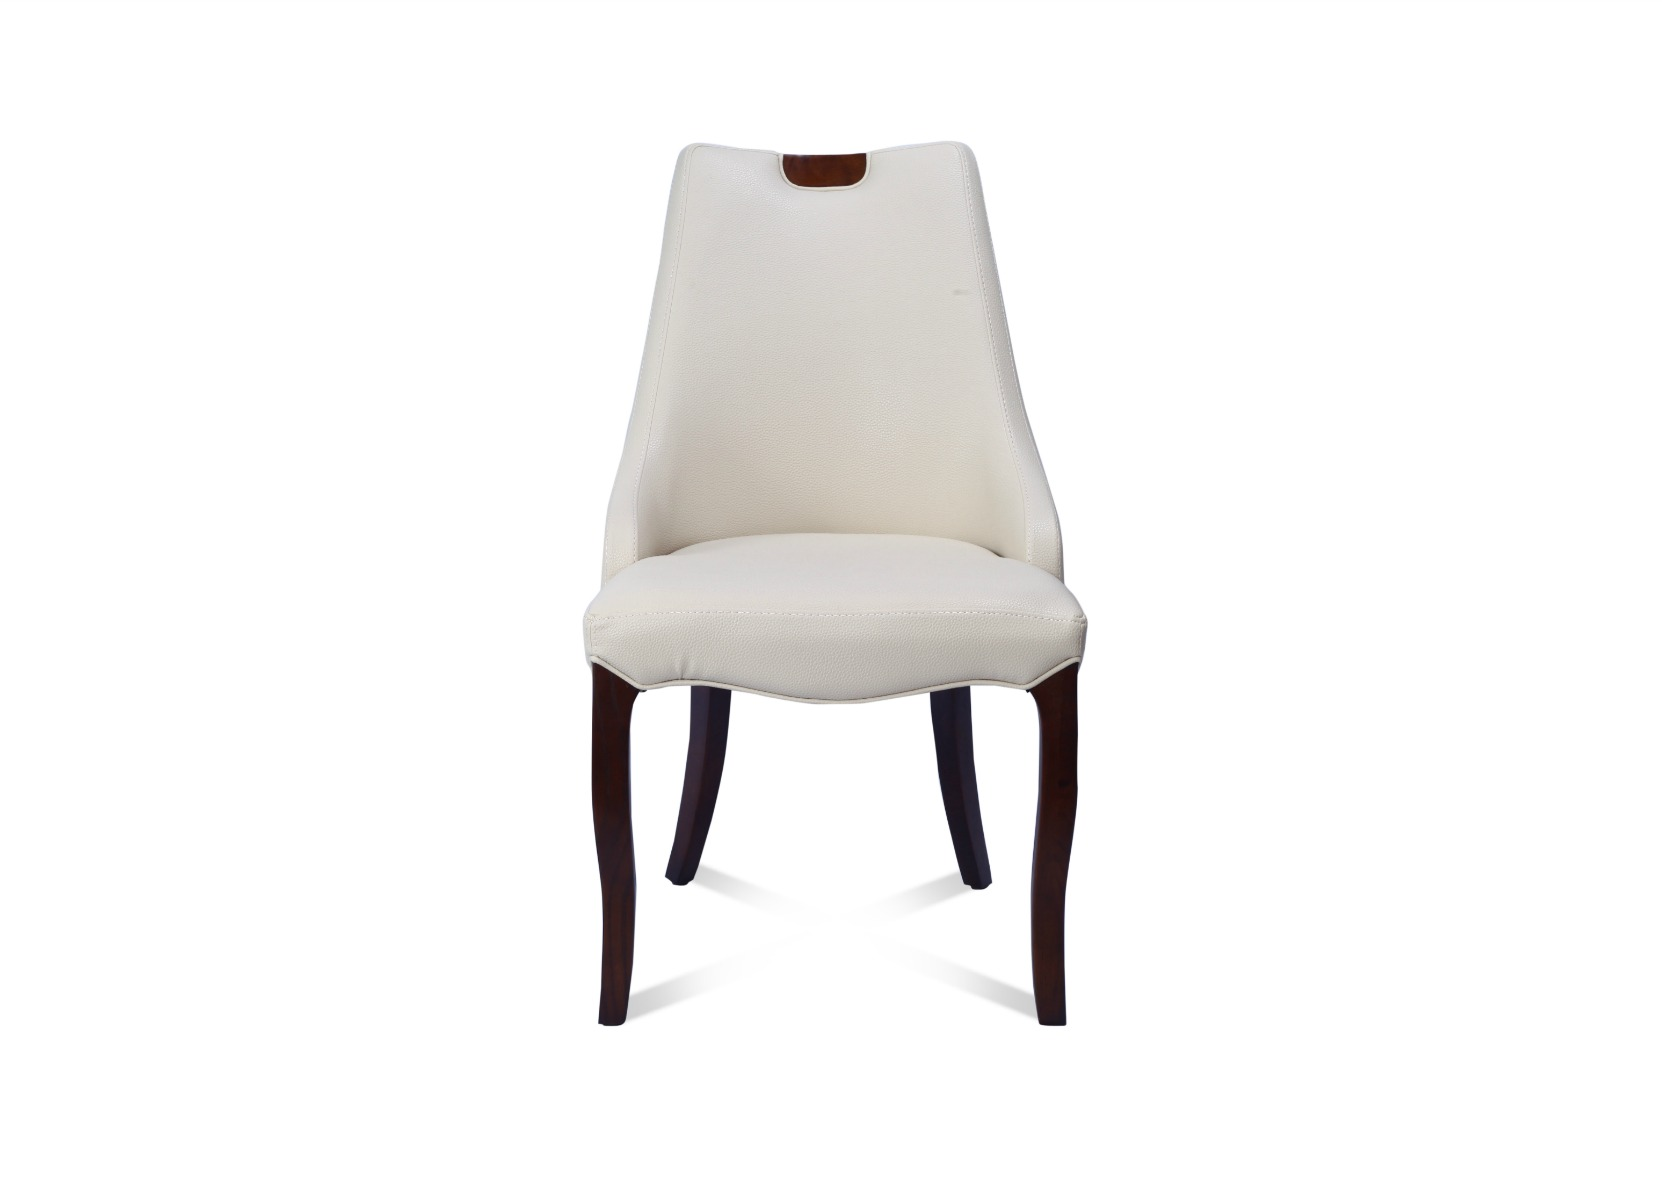 Clover Dining Chair In Cream Leather IMG_0144 0 IMG_0133 0 ...